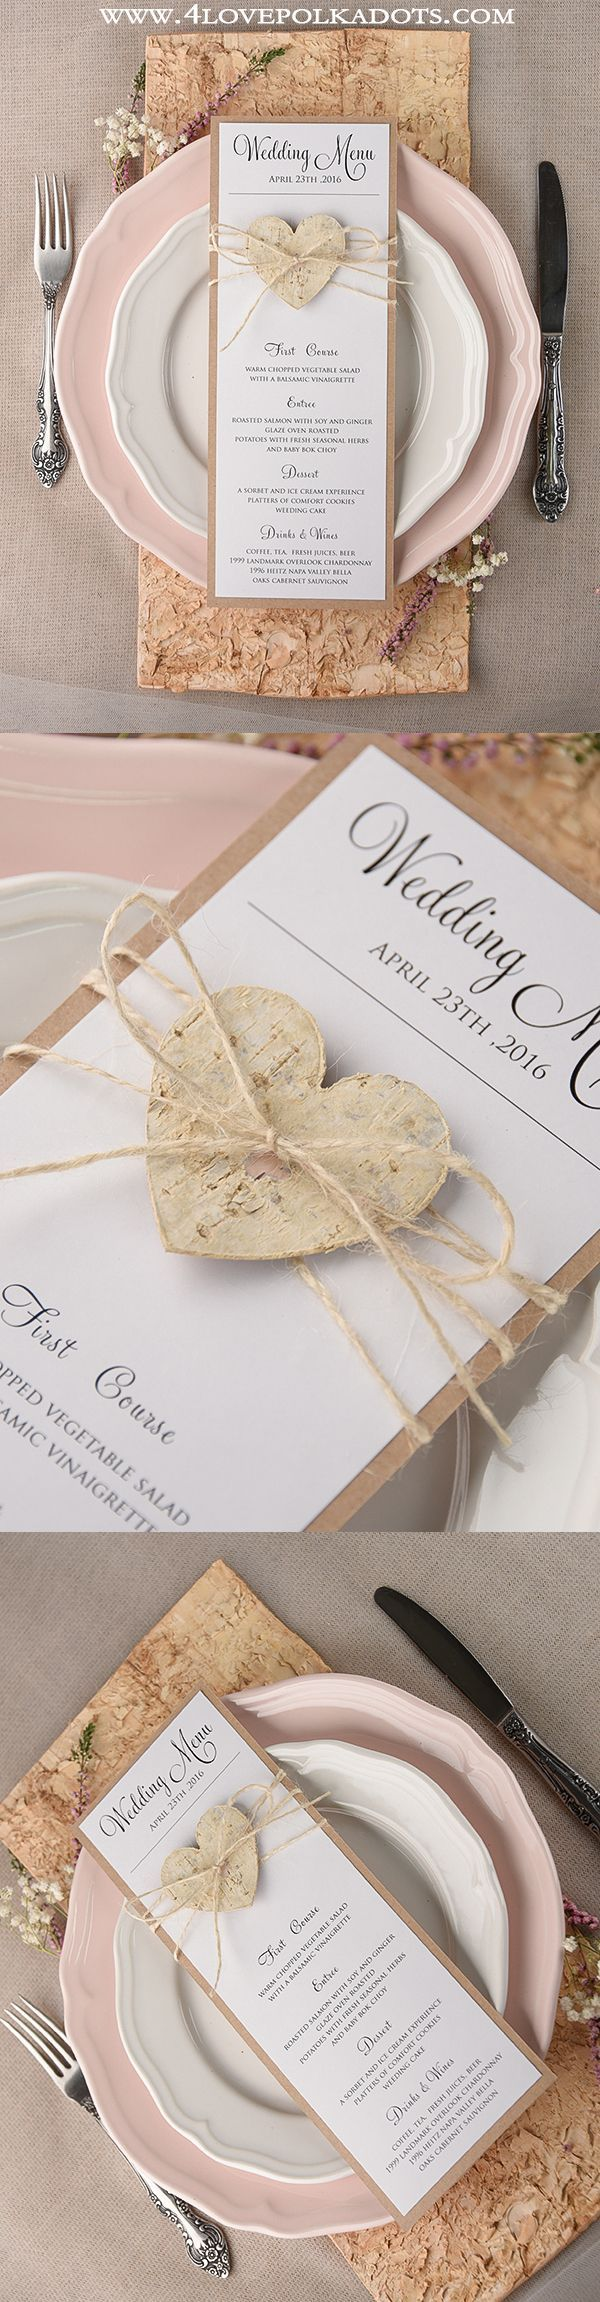 Rustic Wedding Menu #weddingideas #menucards